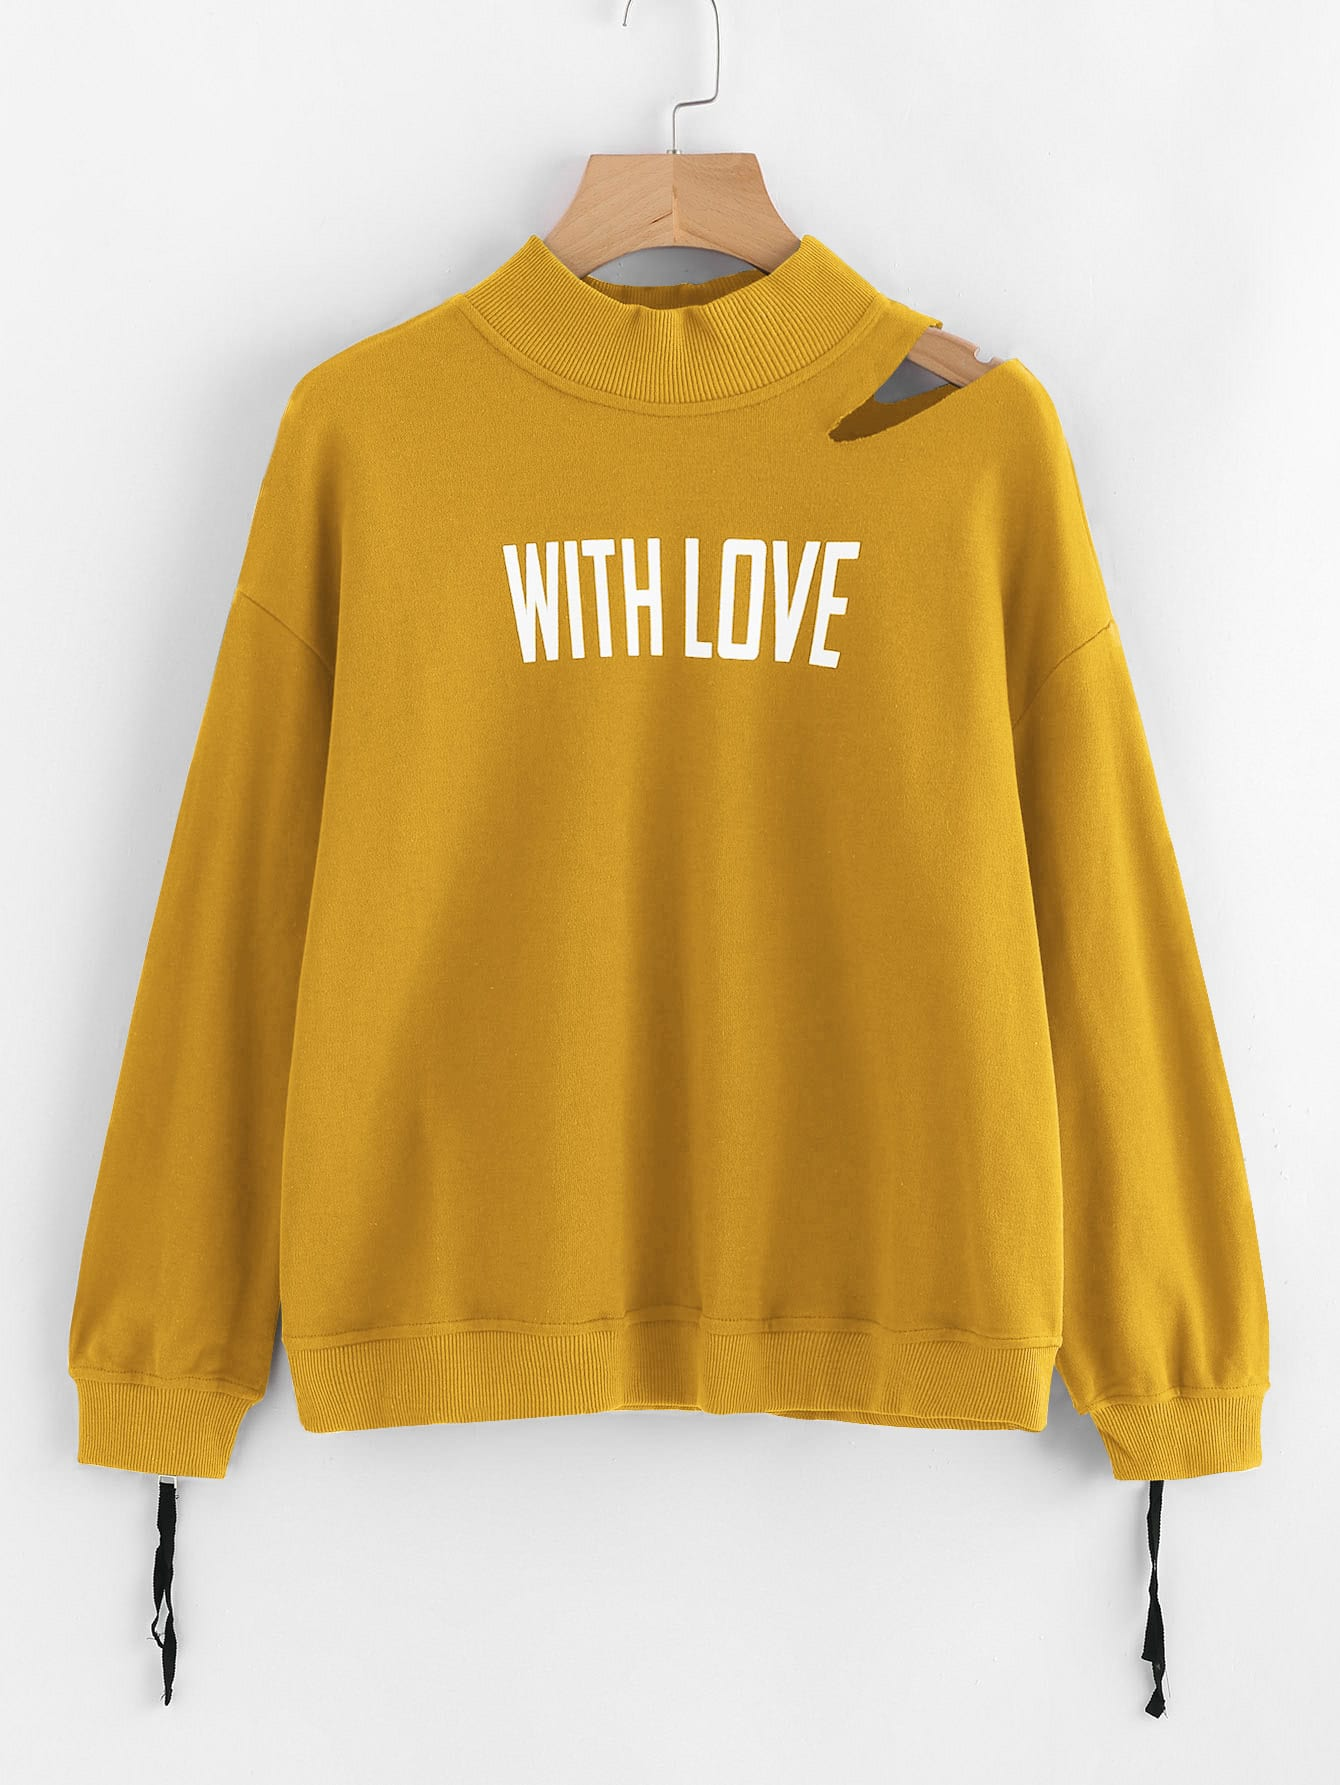 Cutout Shoulder Zip Cuff Graphic Sweatshirt two tone drop shoulder sweatshirt